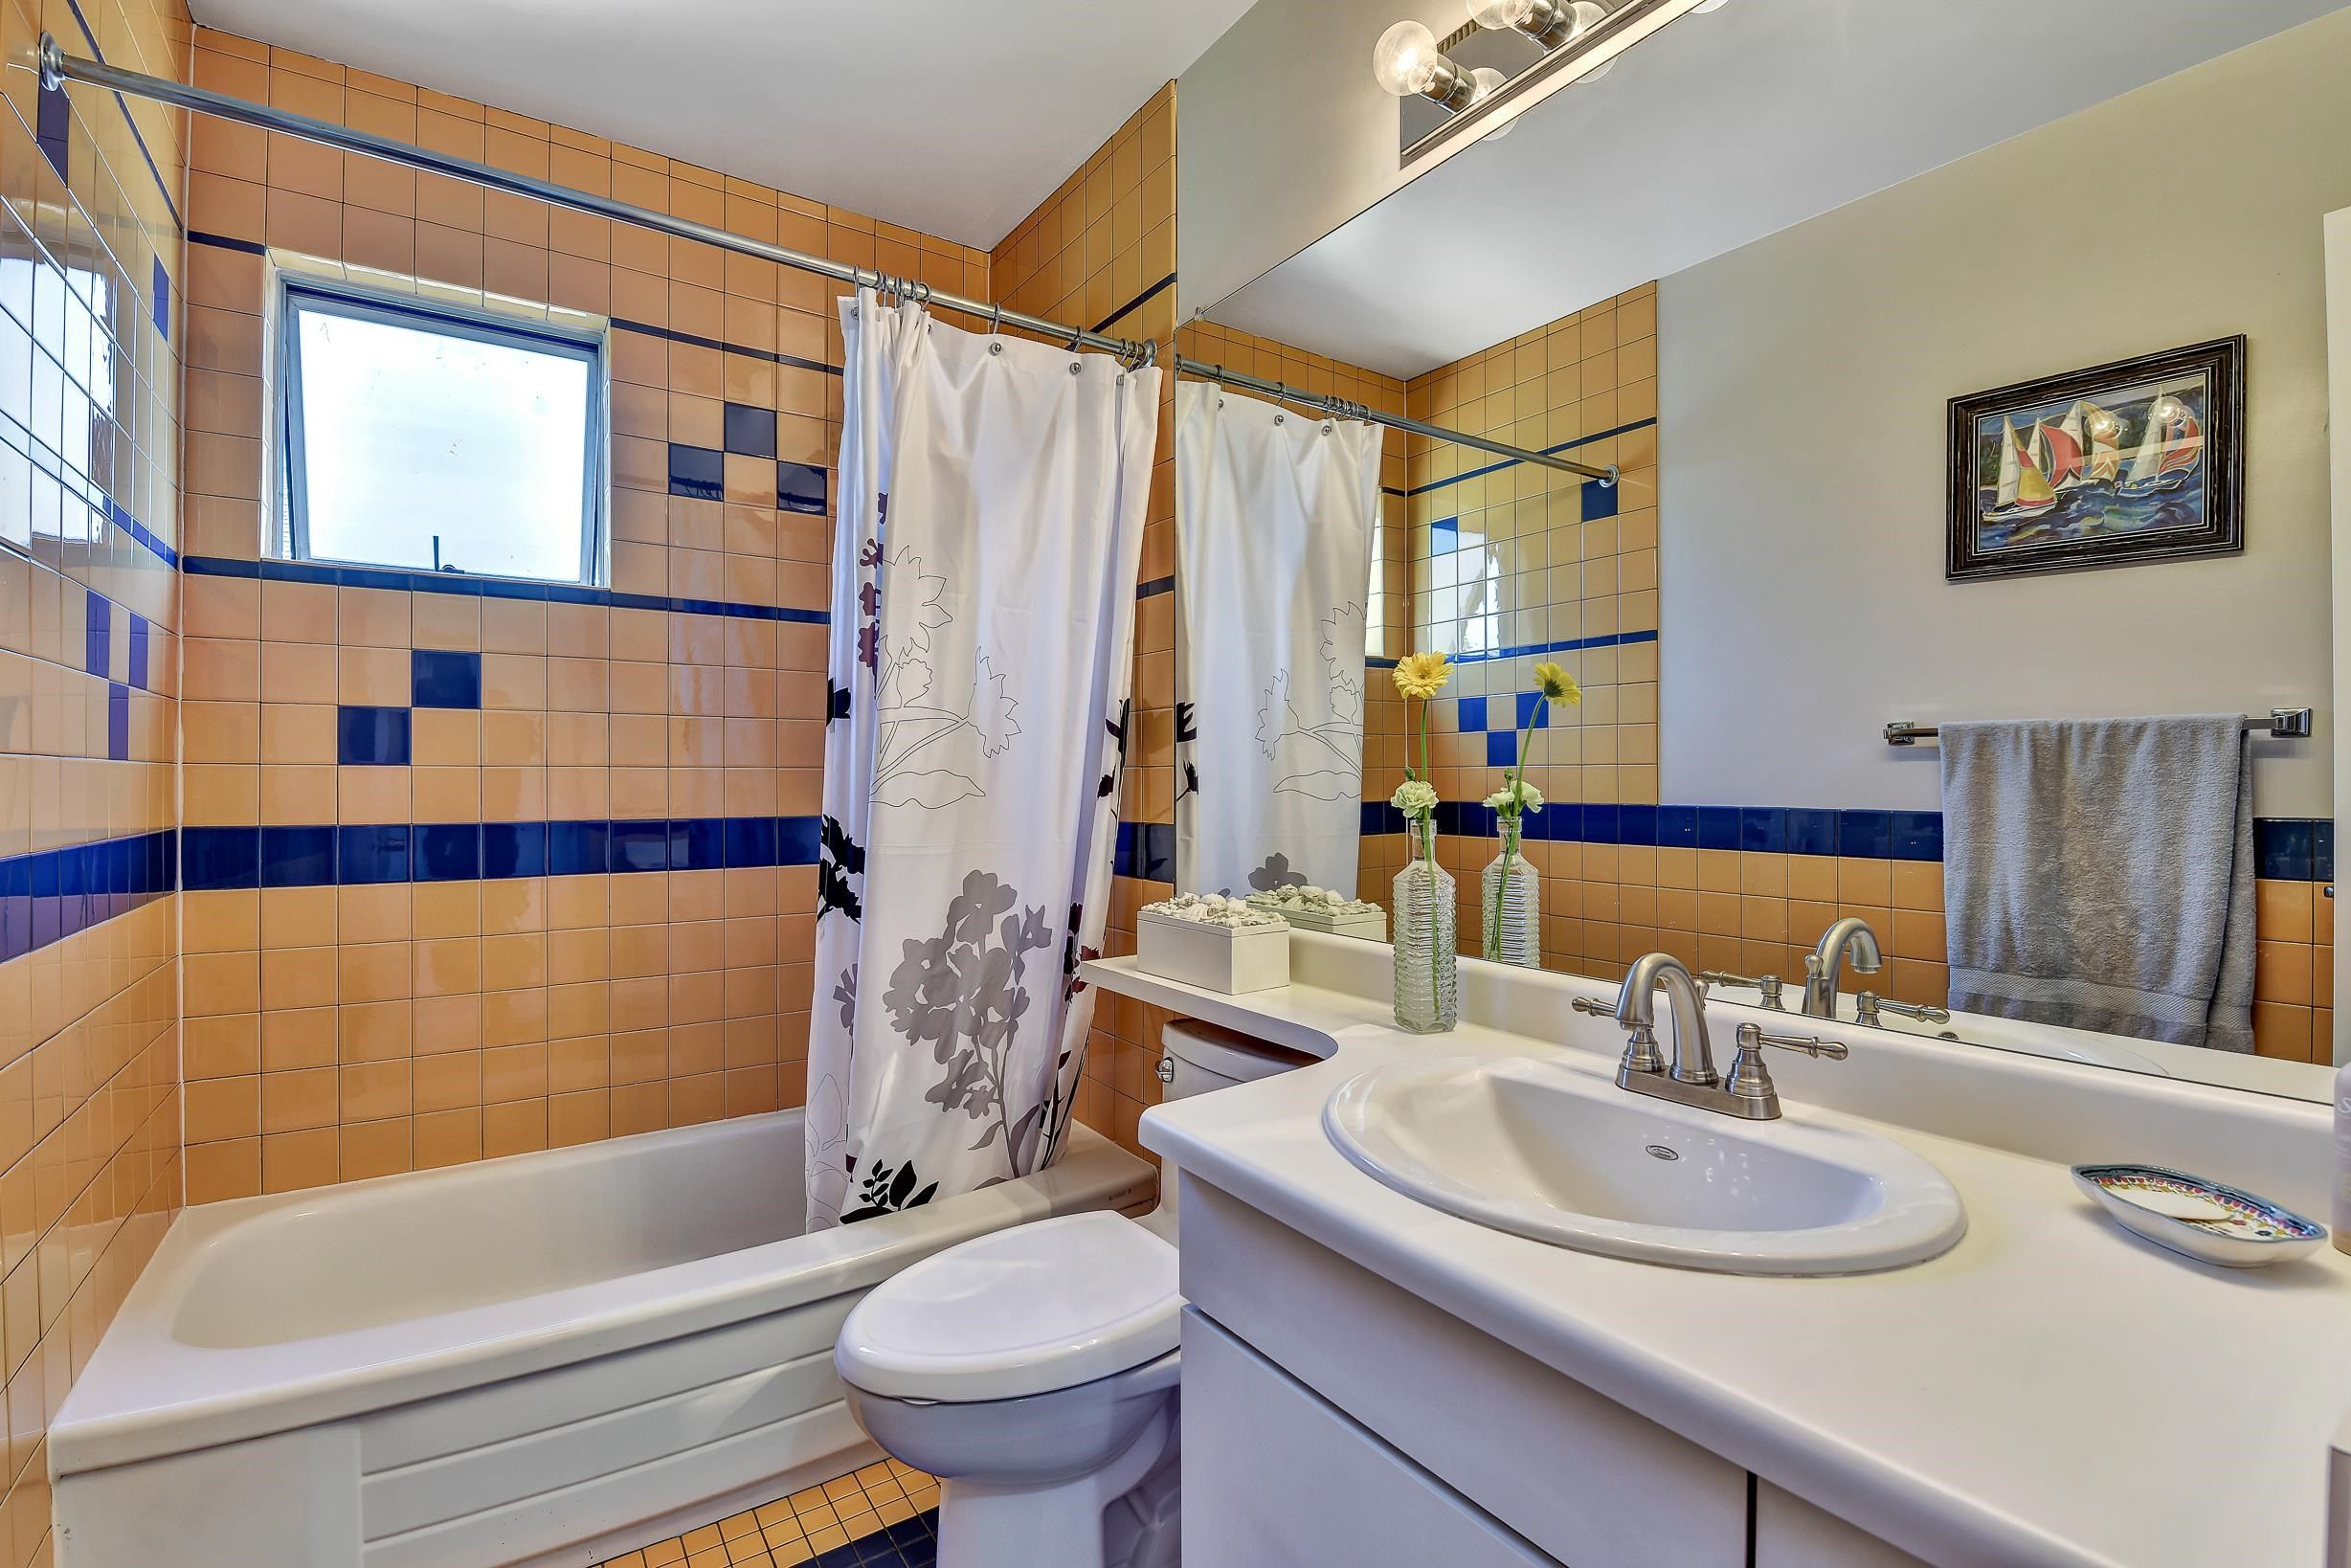 """Photo 18: Photos: 208 1140 CASTLE Crescent in Port Coquitlam: Citadel PQ Townhouse for sale in """"THE UPLANDS"""" : MLS®# R2609078"""